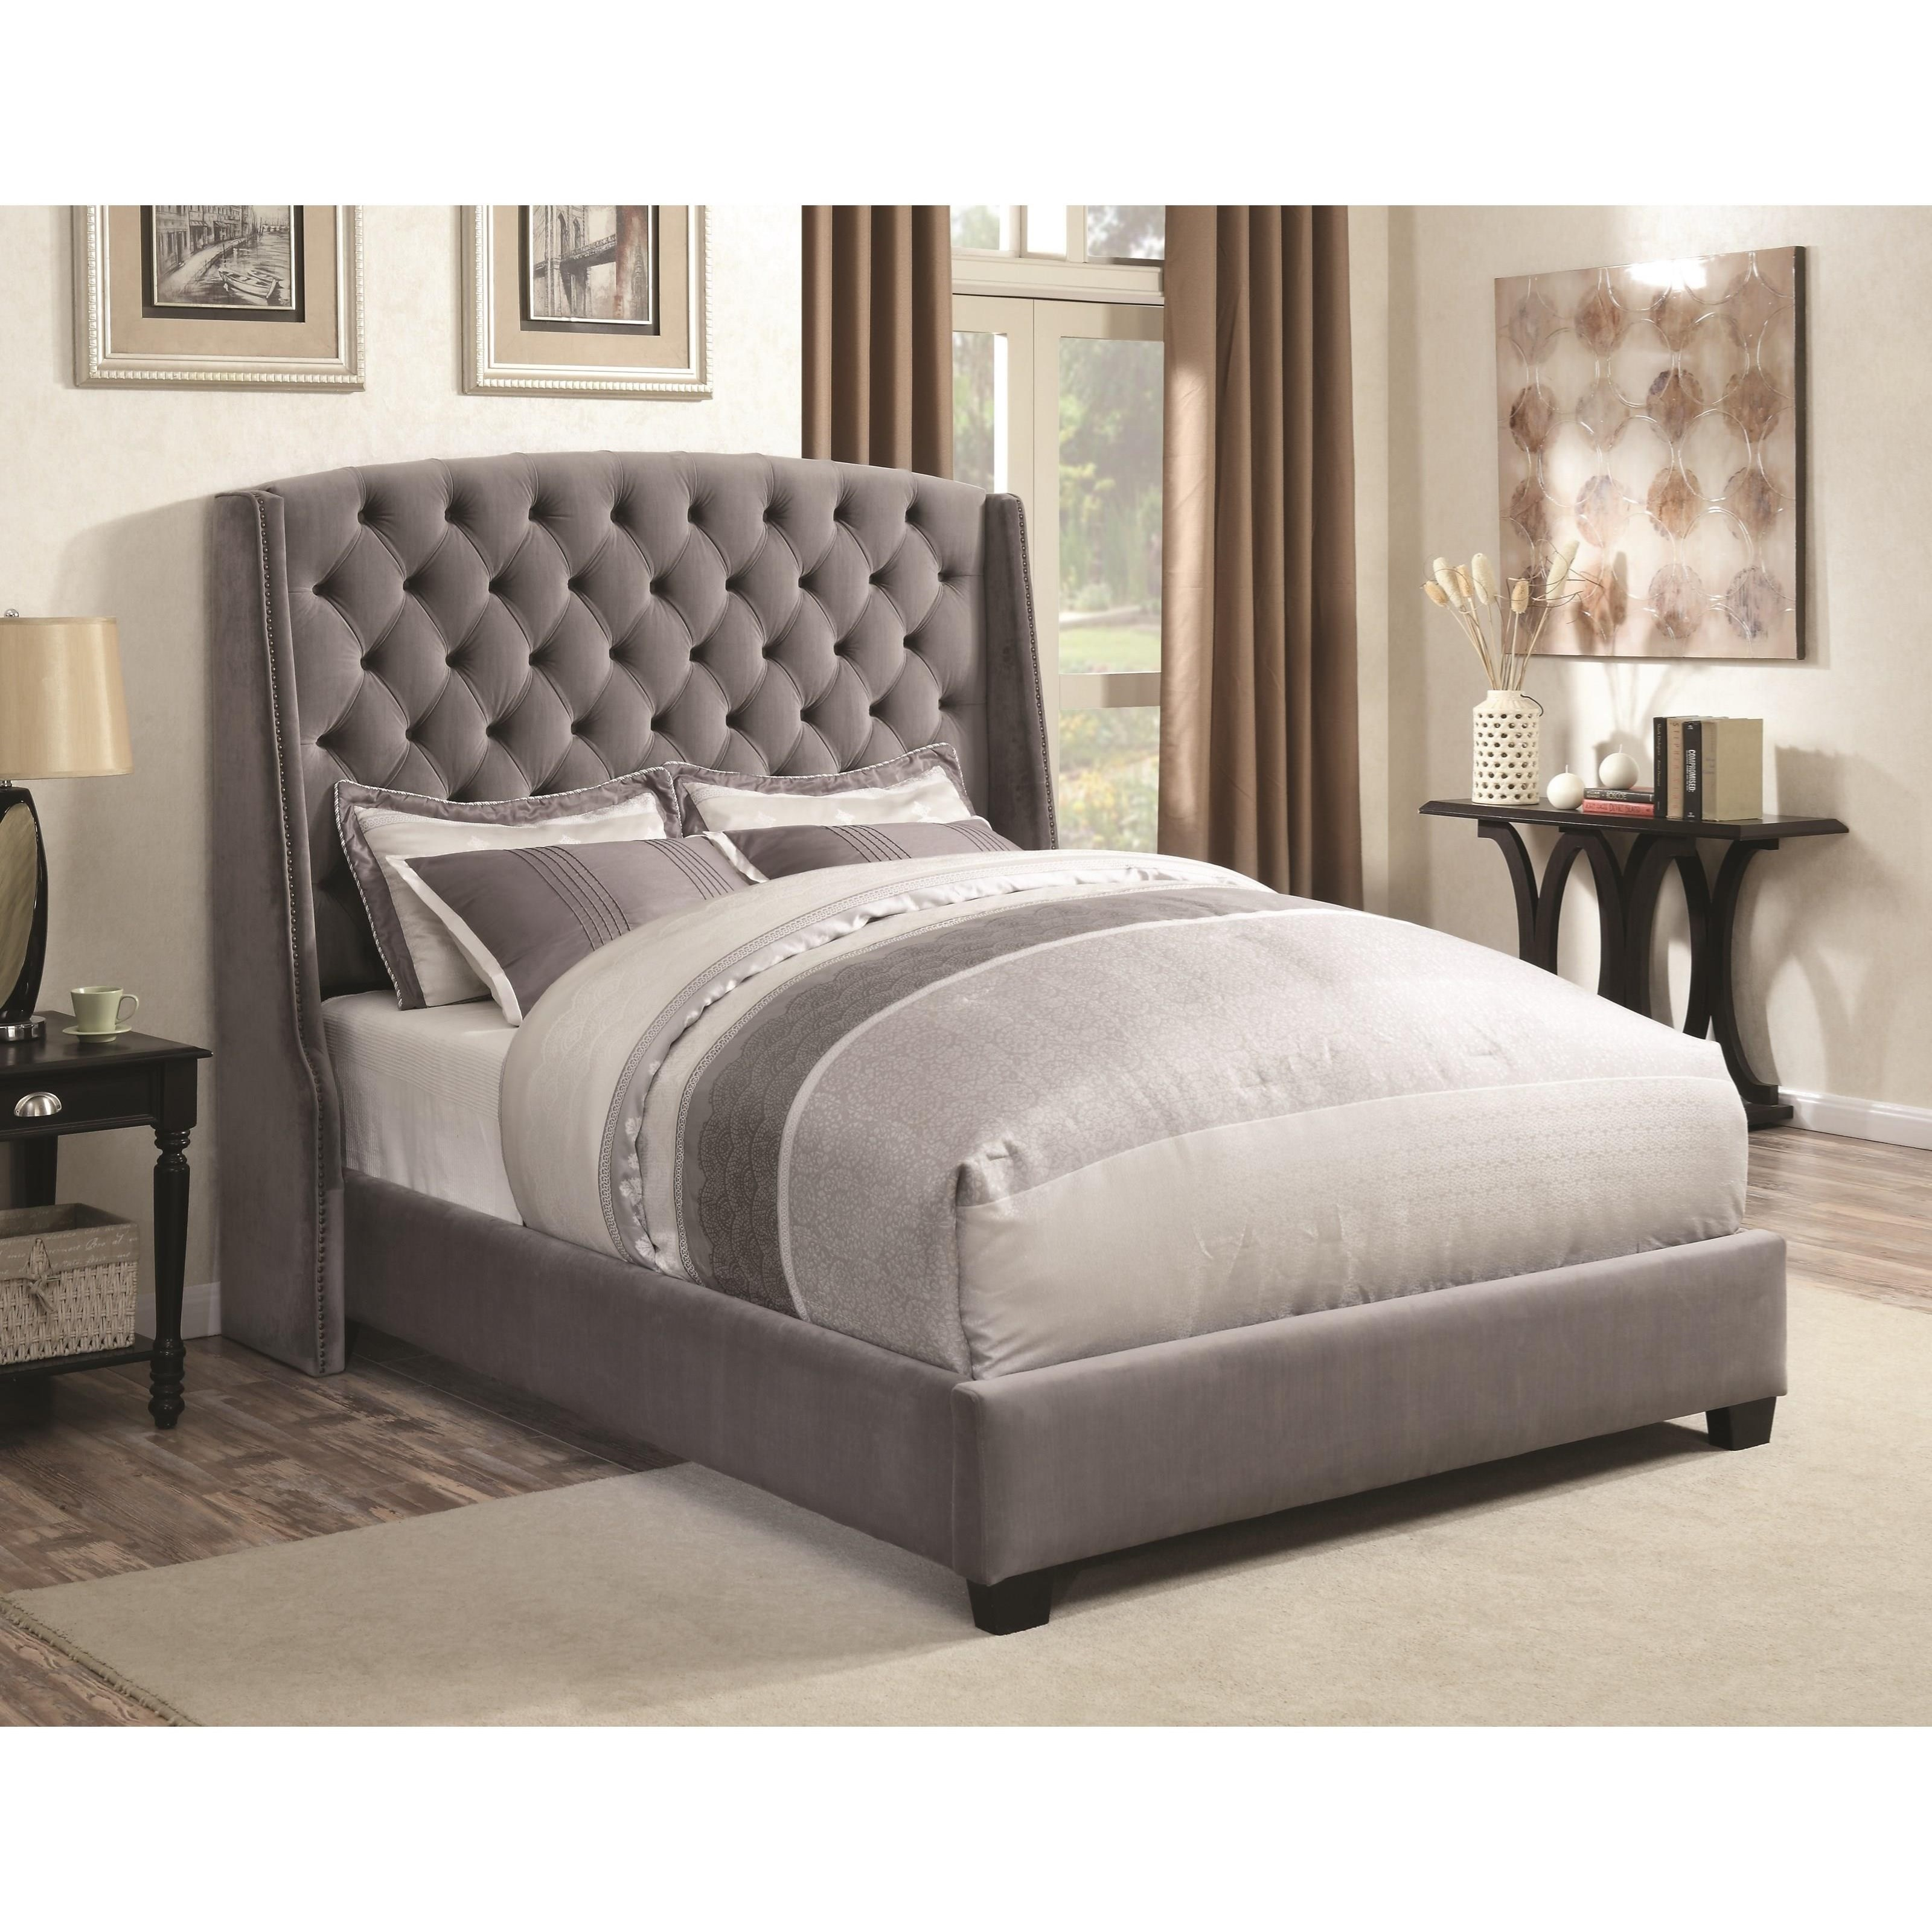 Upholstered Beds Pissarro Queen Bed by Coaster at Northeast Factory Direct